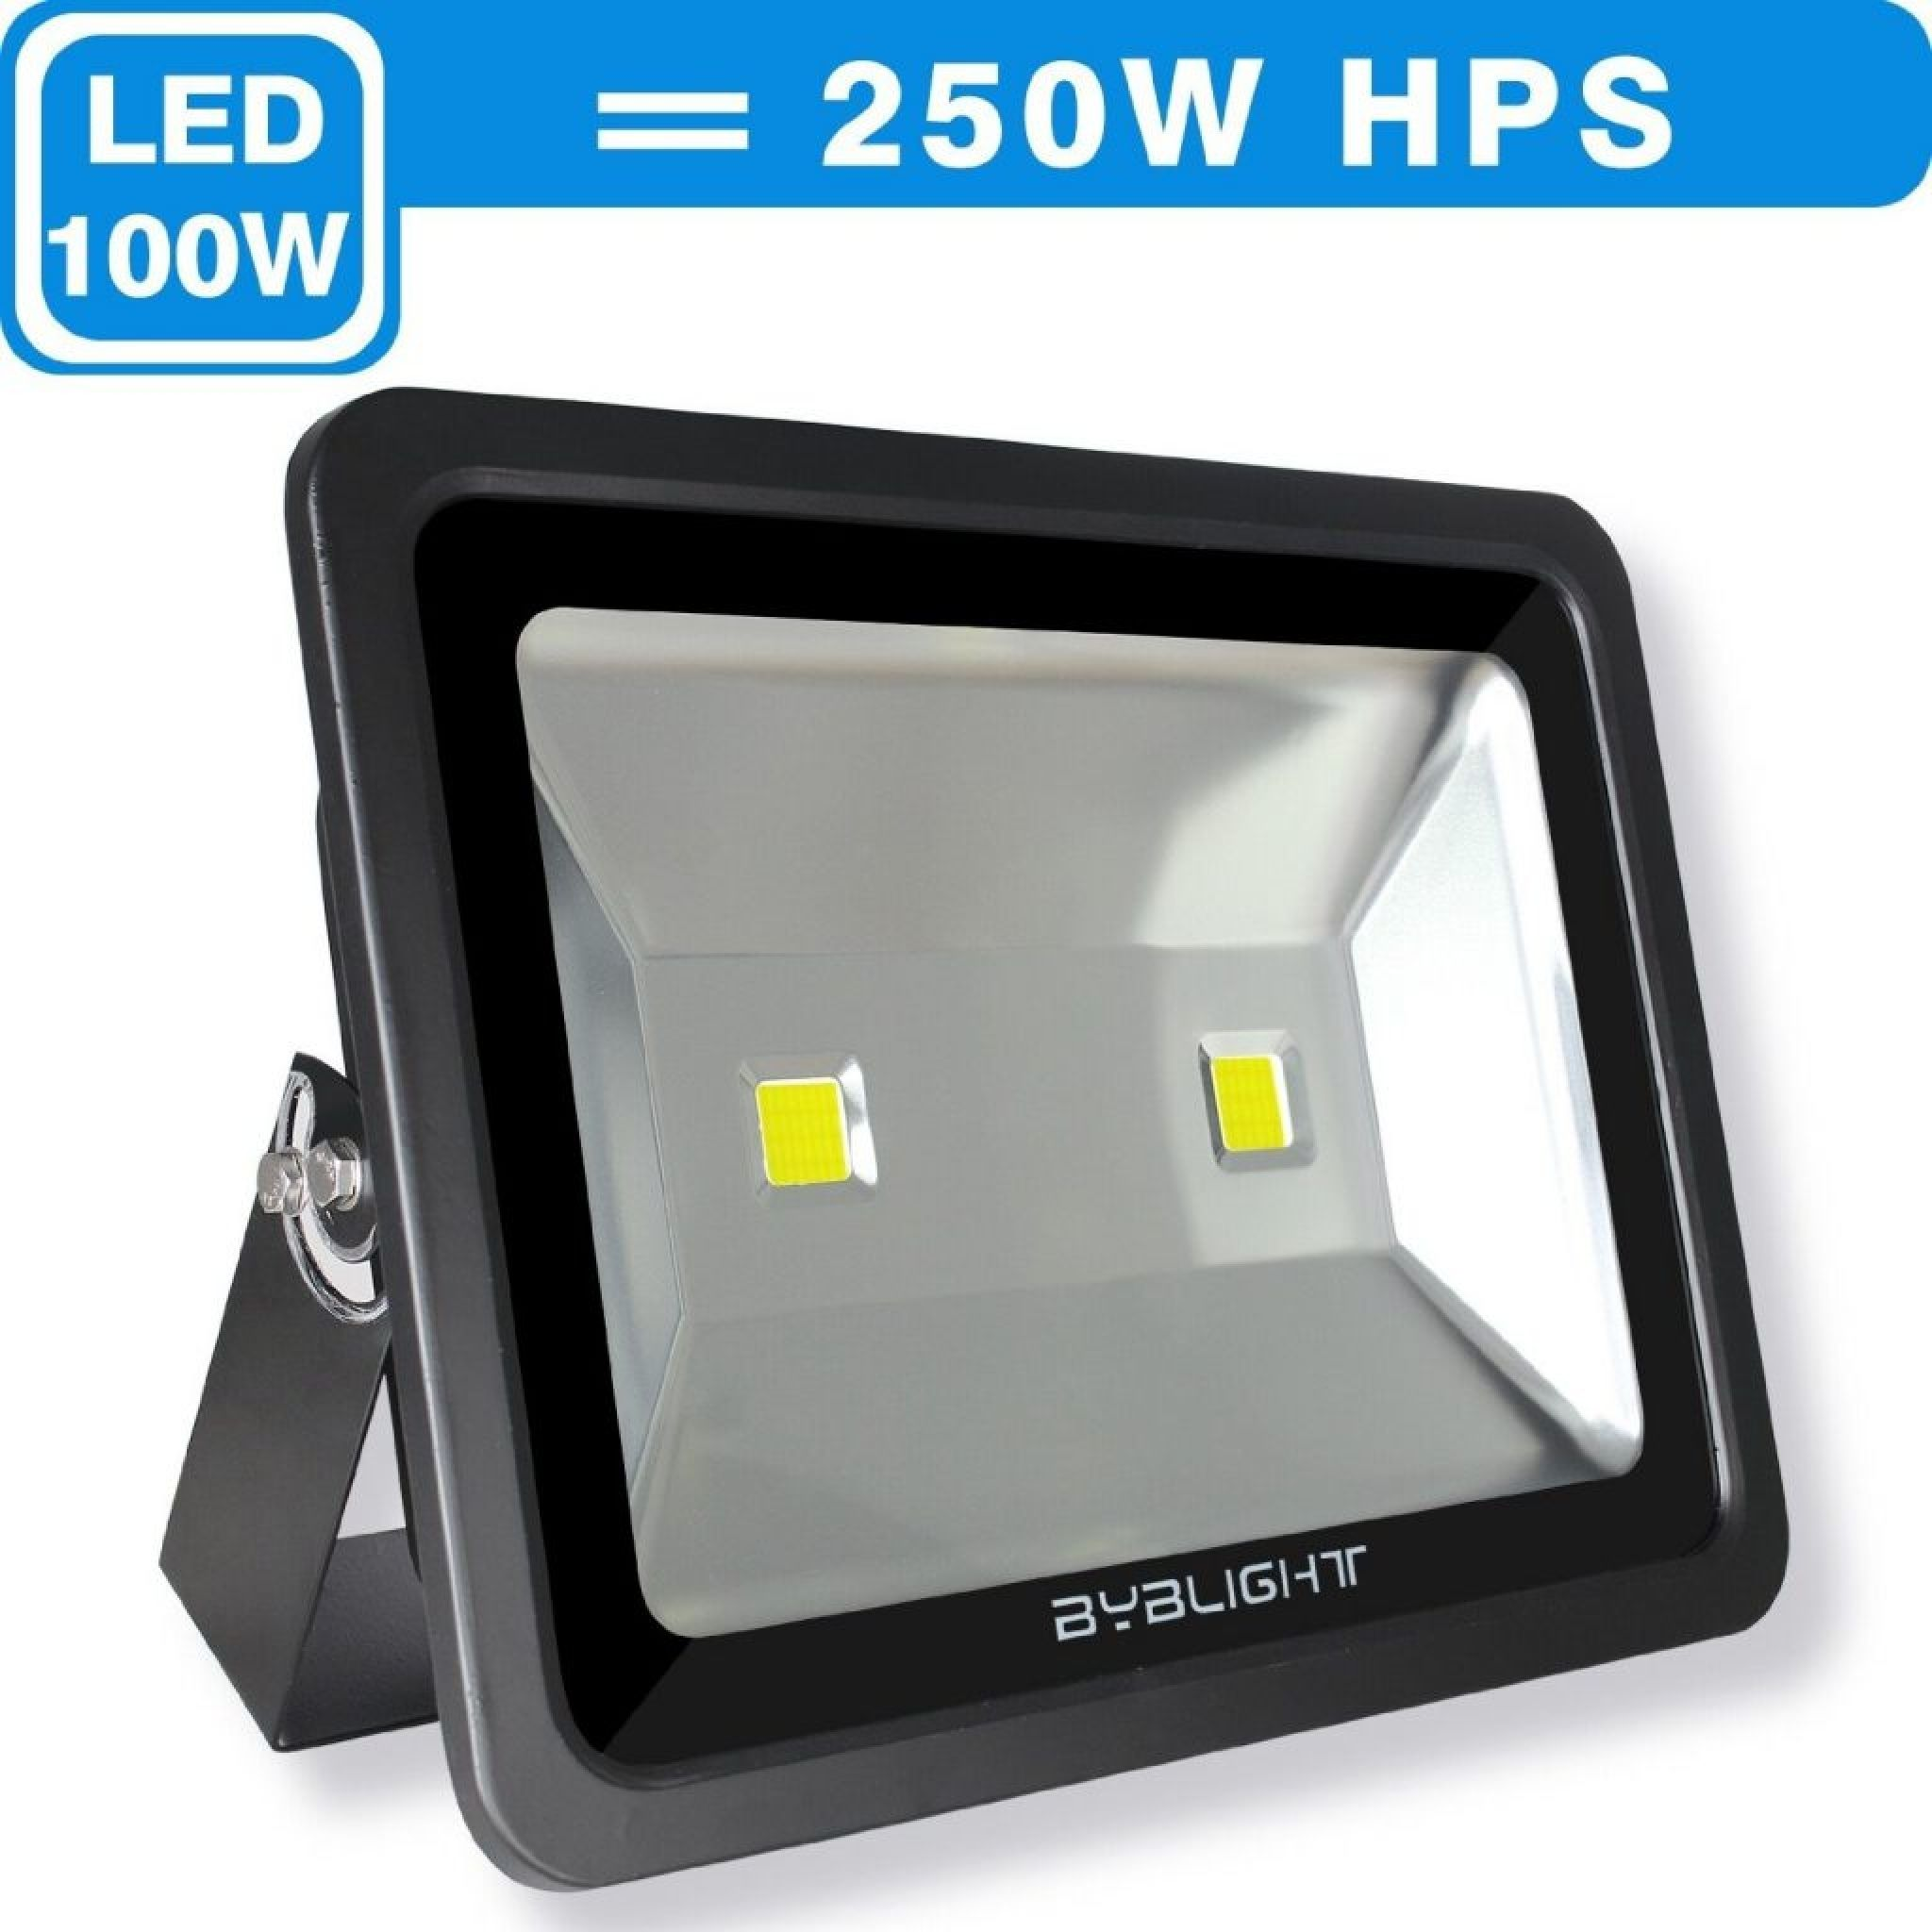 Brightest Outdoor Led Flood Lights Lowes Paint Colors Interior Check More At Http Www Mtbasics Com Brightest Led Flood Lights Led Flood Lowes Paint Colors